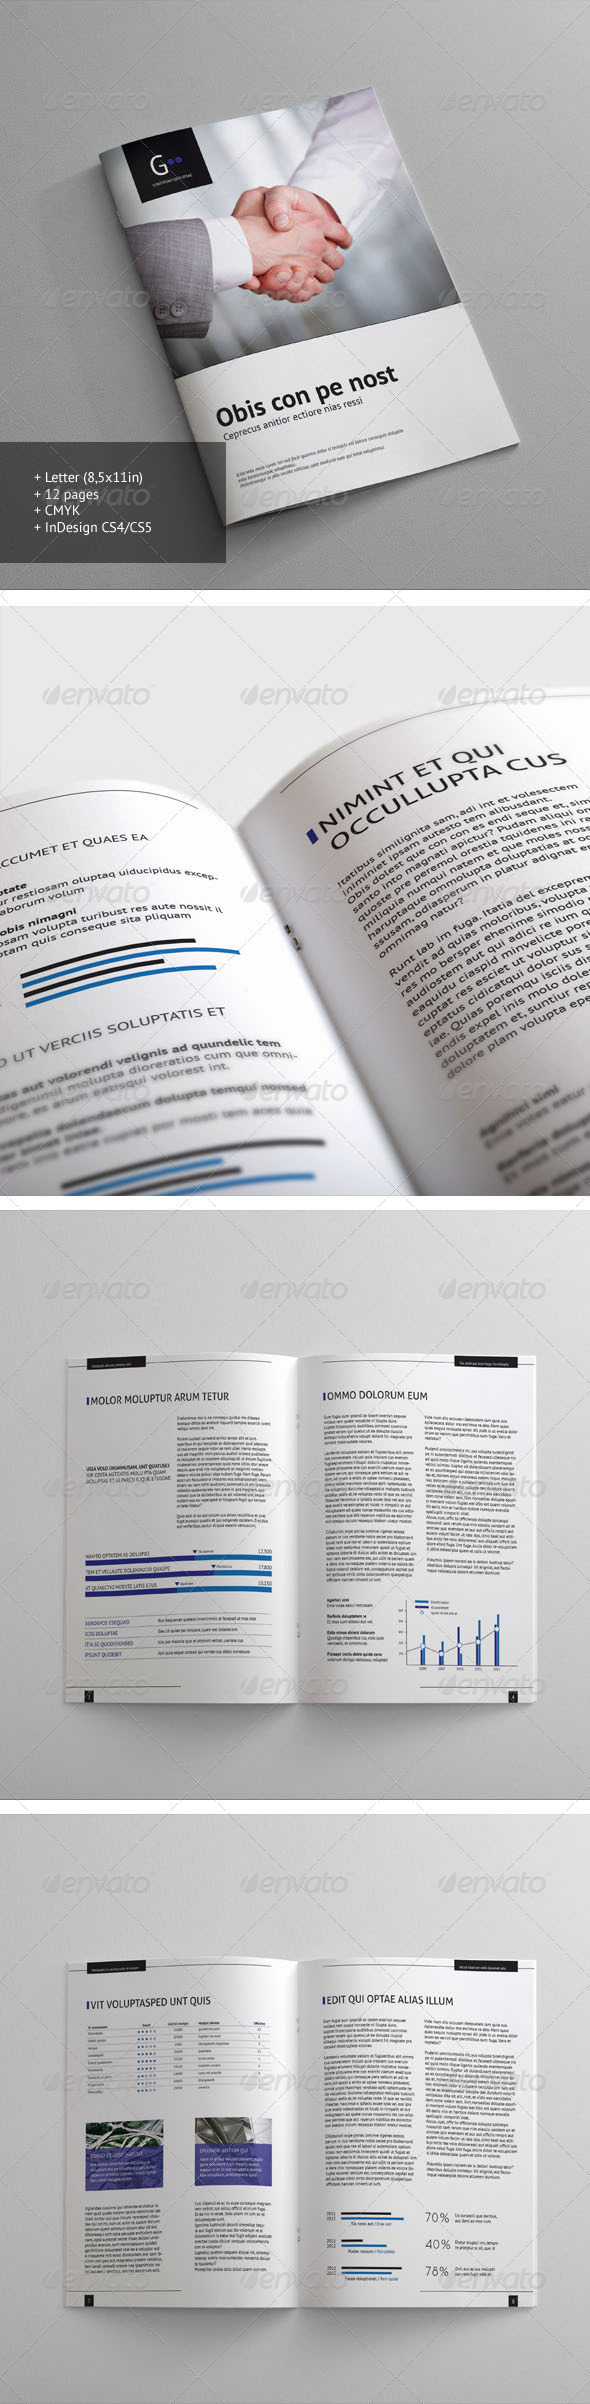 GraphicRiver Corporate Brochure 20 2652335